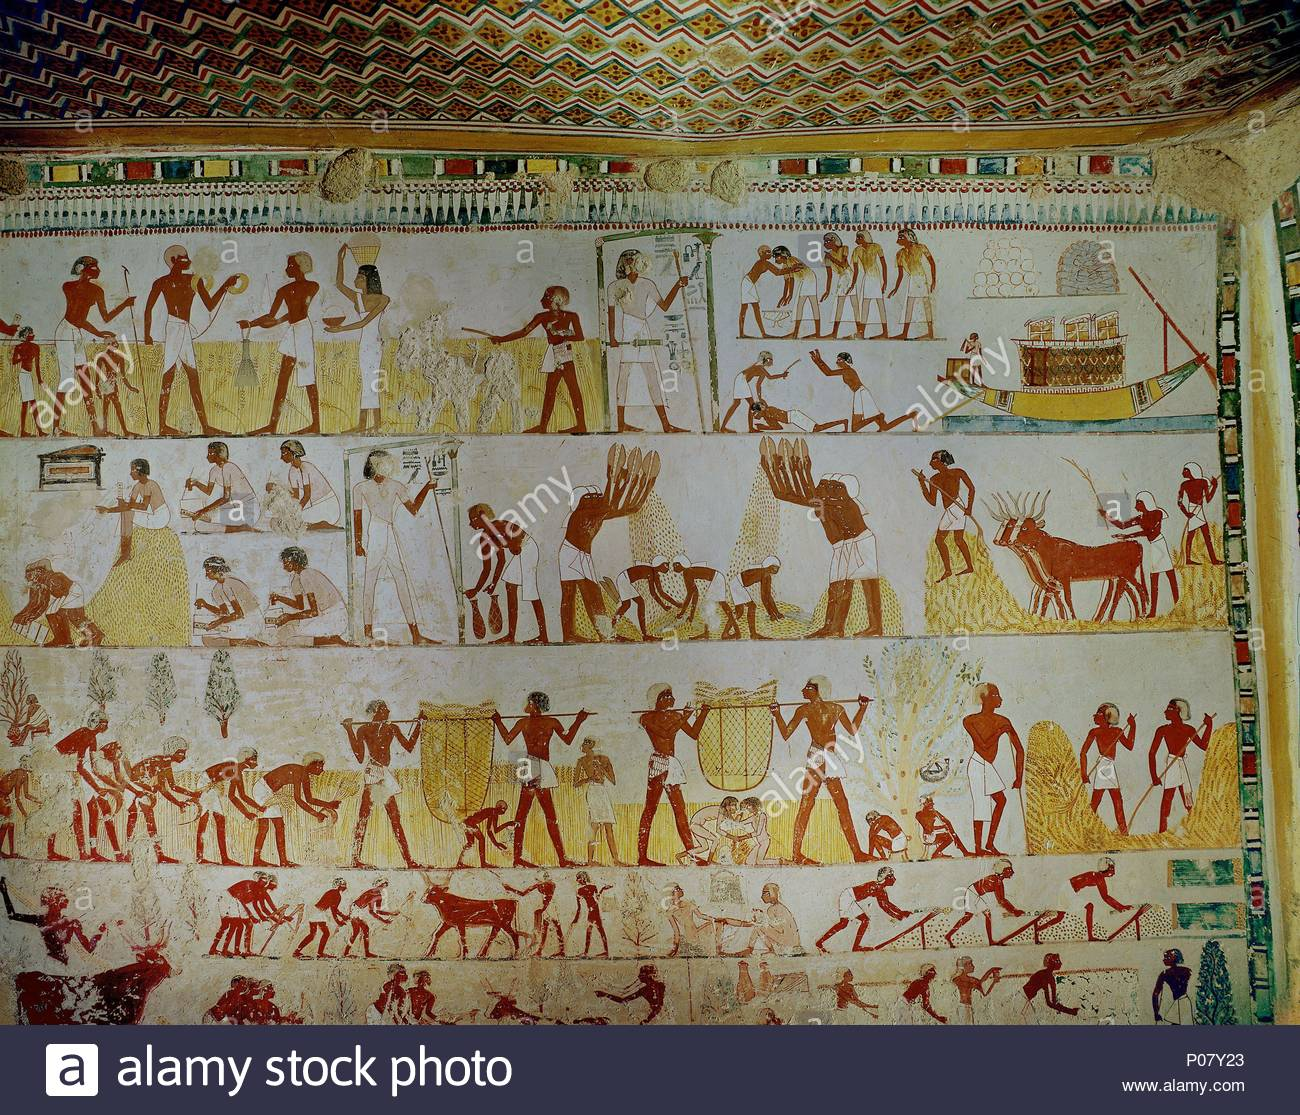 Egypt Wall Painting Farming Stock Photos Luxor Besar Agricultural Scene Overall View Of A Wallpainting In The Tomb Mennah Scribe